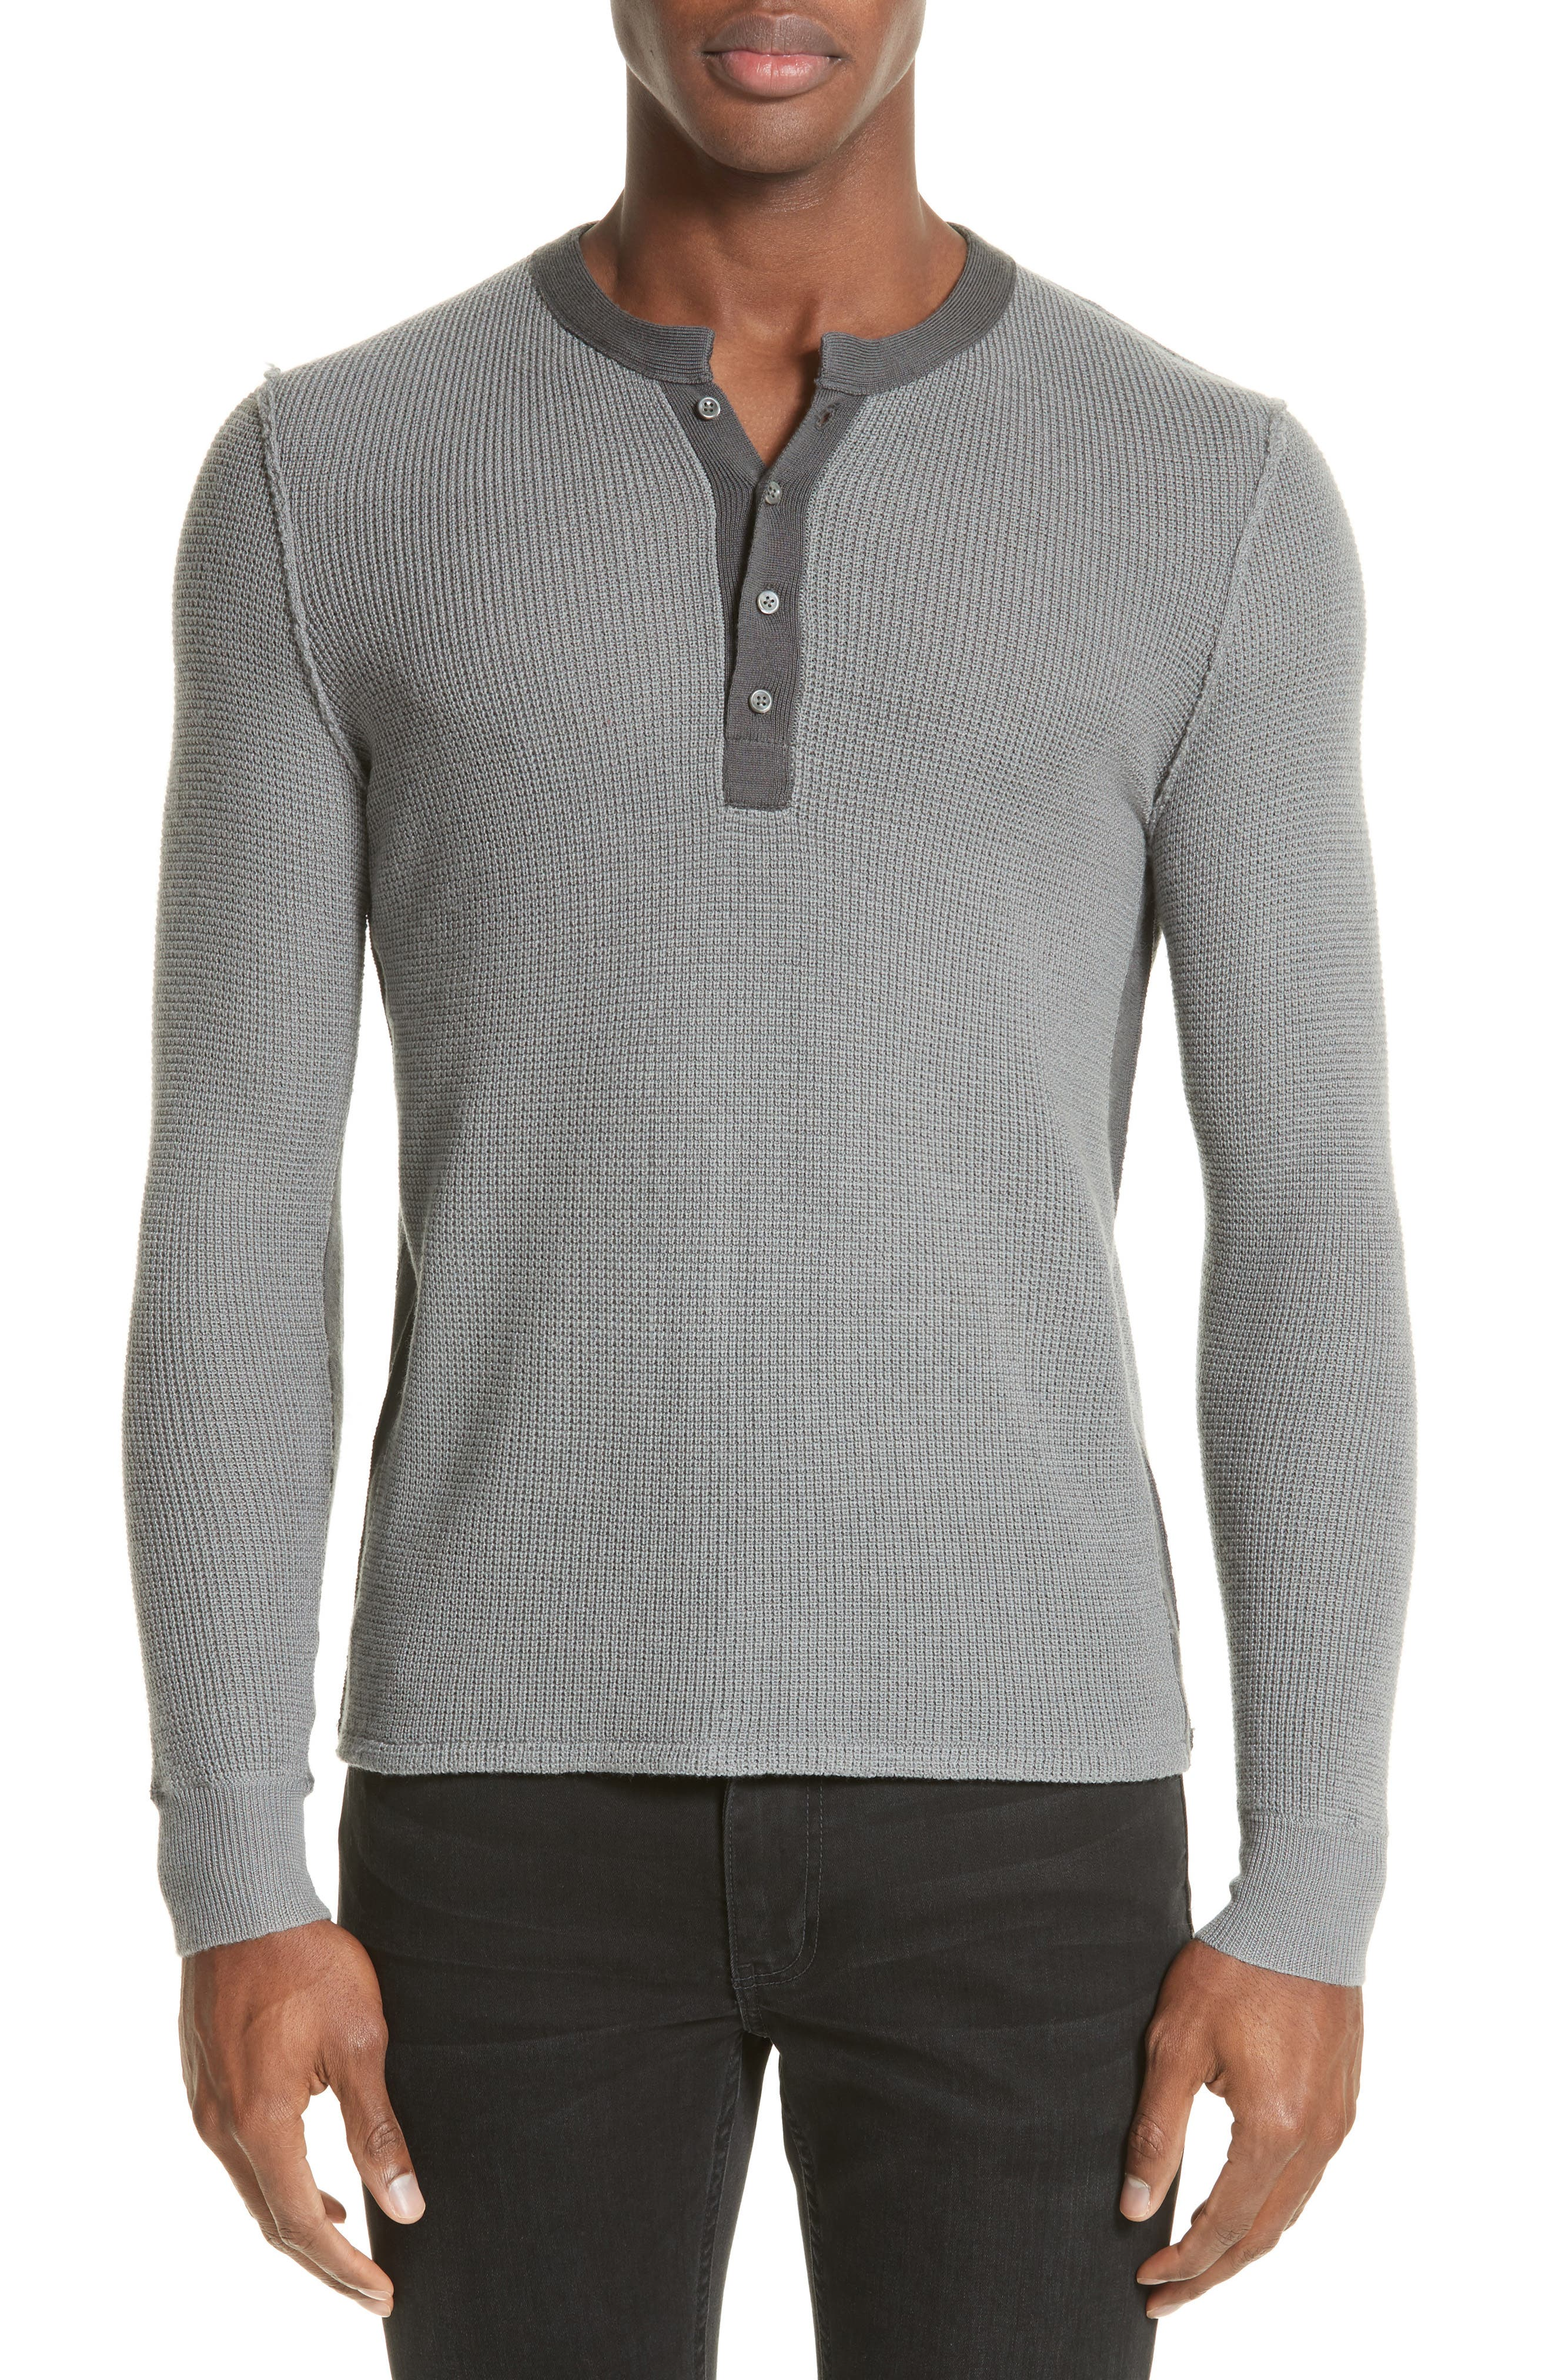 Main Image - OVADIA & SONS Zack Two-Tone Waffle Knit Wool Henley